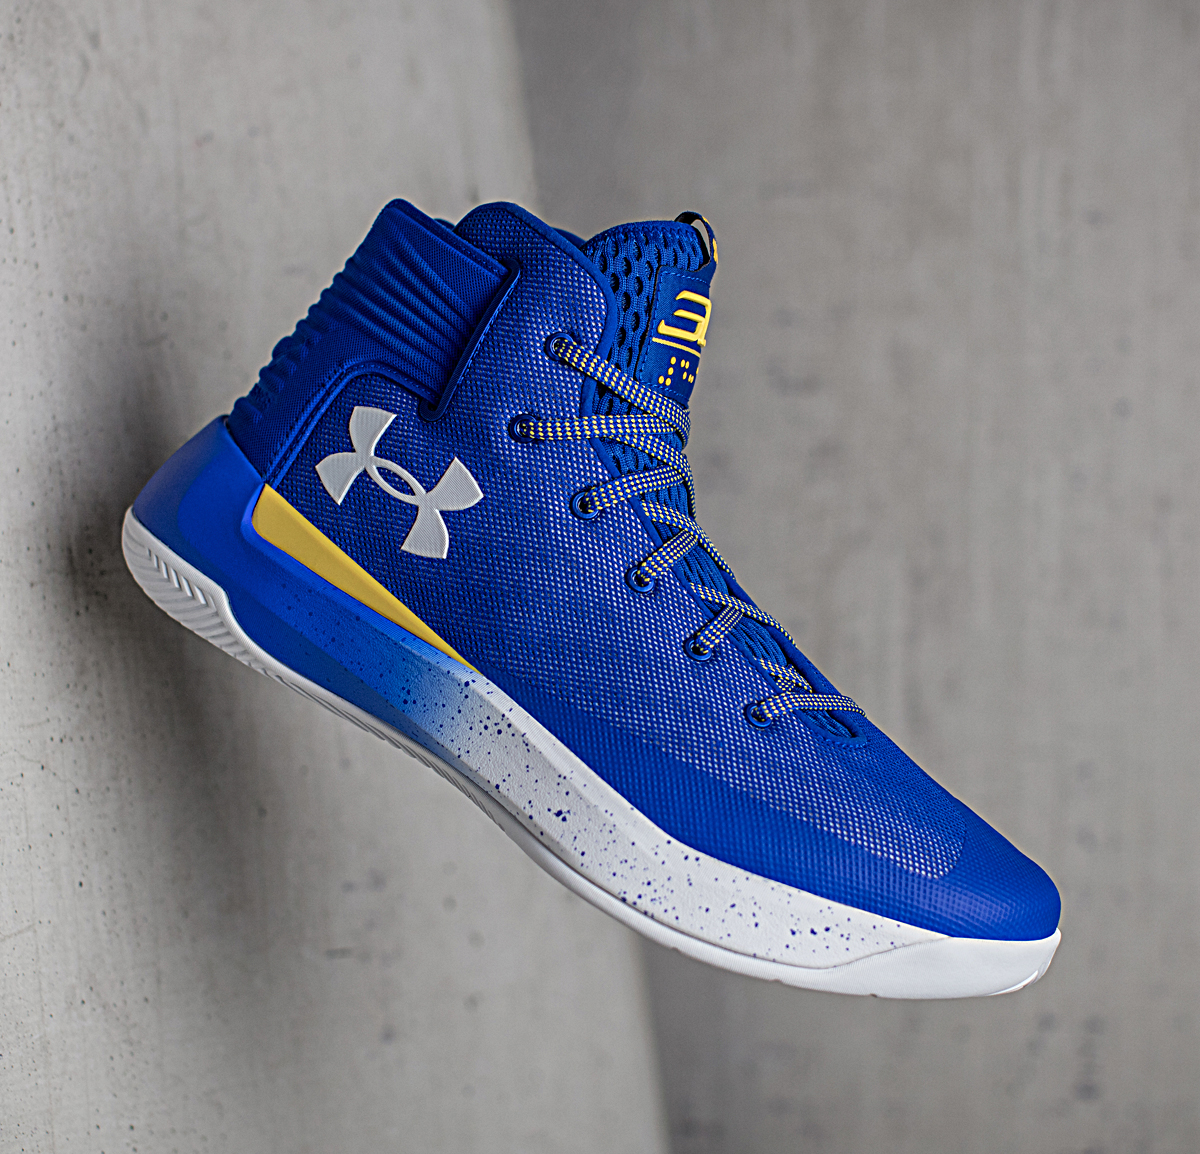 6af177c200c Just The Facts    Inside Stephen Curry s Under Armour Curry 3Zer0 Playoff  Shoe